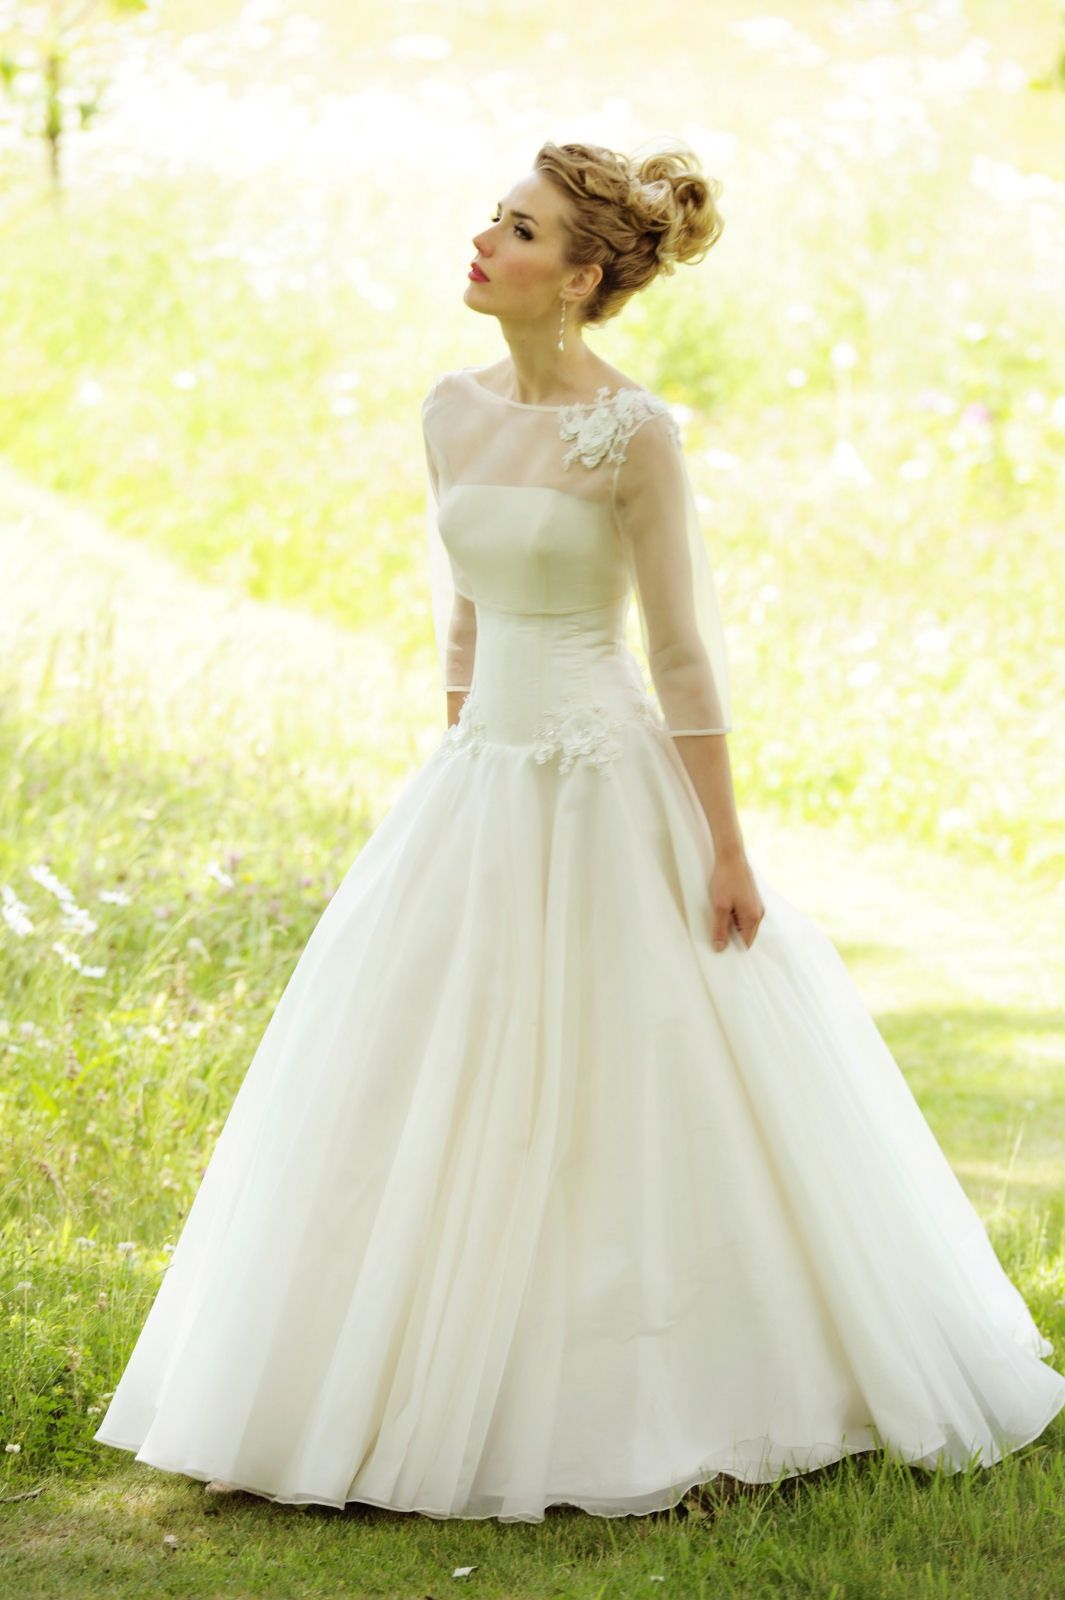 Country style wedding dress   Grace Kelly Style Wedding Dress  Dress for Country Wedding